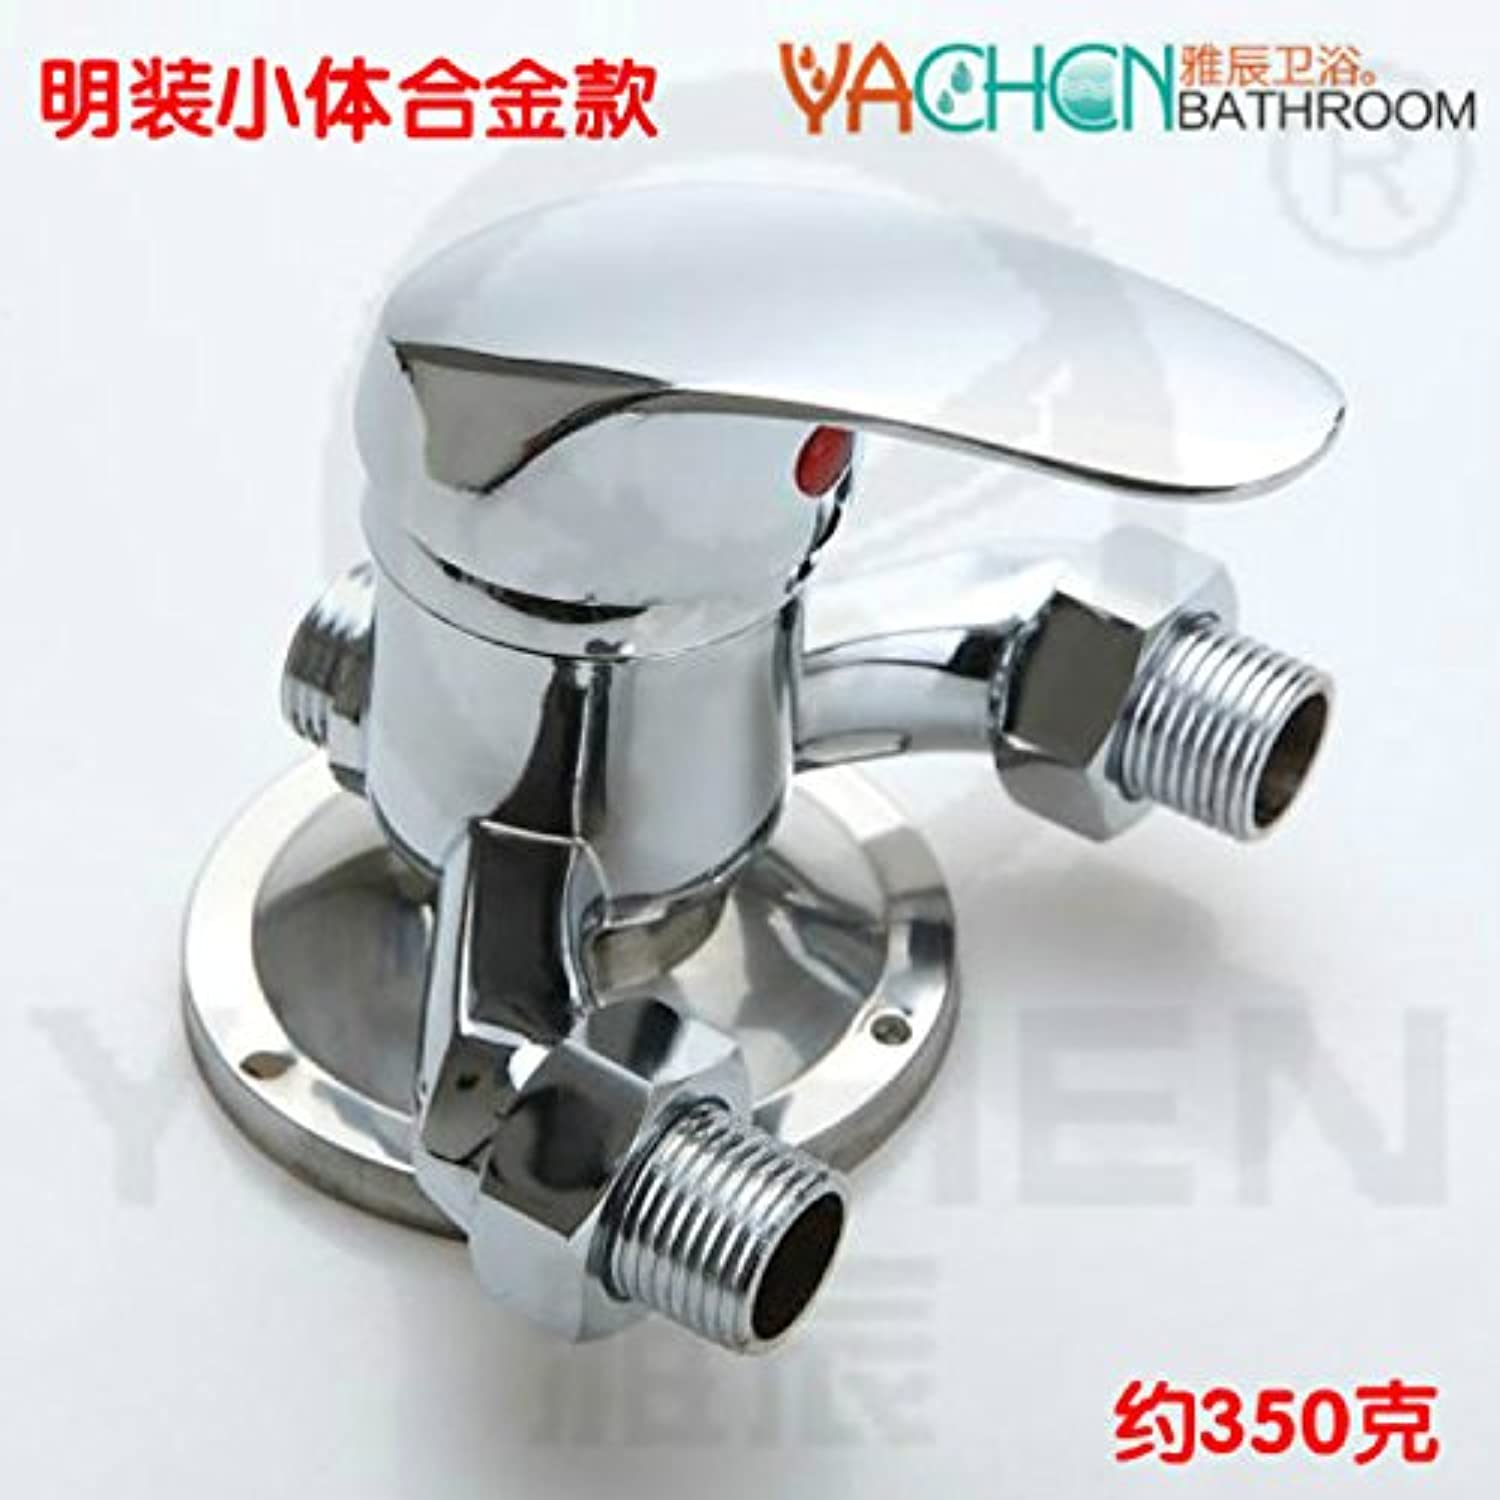 Gyps Faucet Single Lever Washbasin Mixer Tap Bathroom Fittings Copper in Shower Tap Shower and Cold Tap Shower Switch Valve Water Heating Water Mixing Zinc Alloy